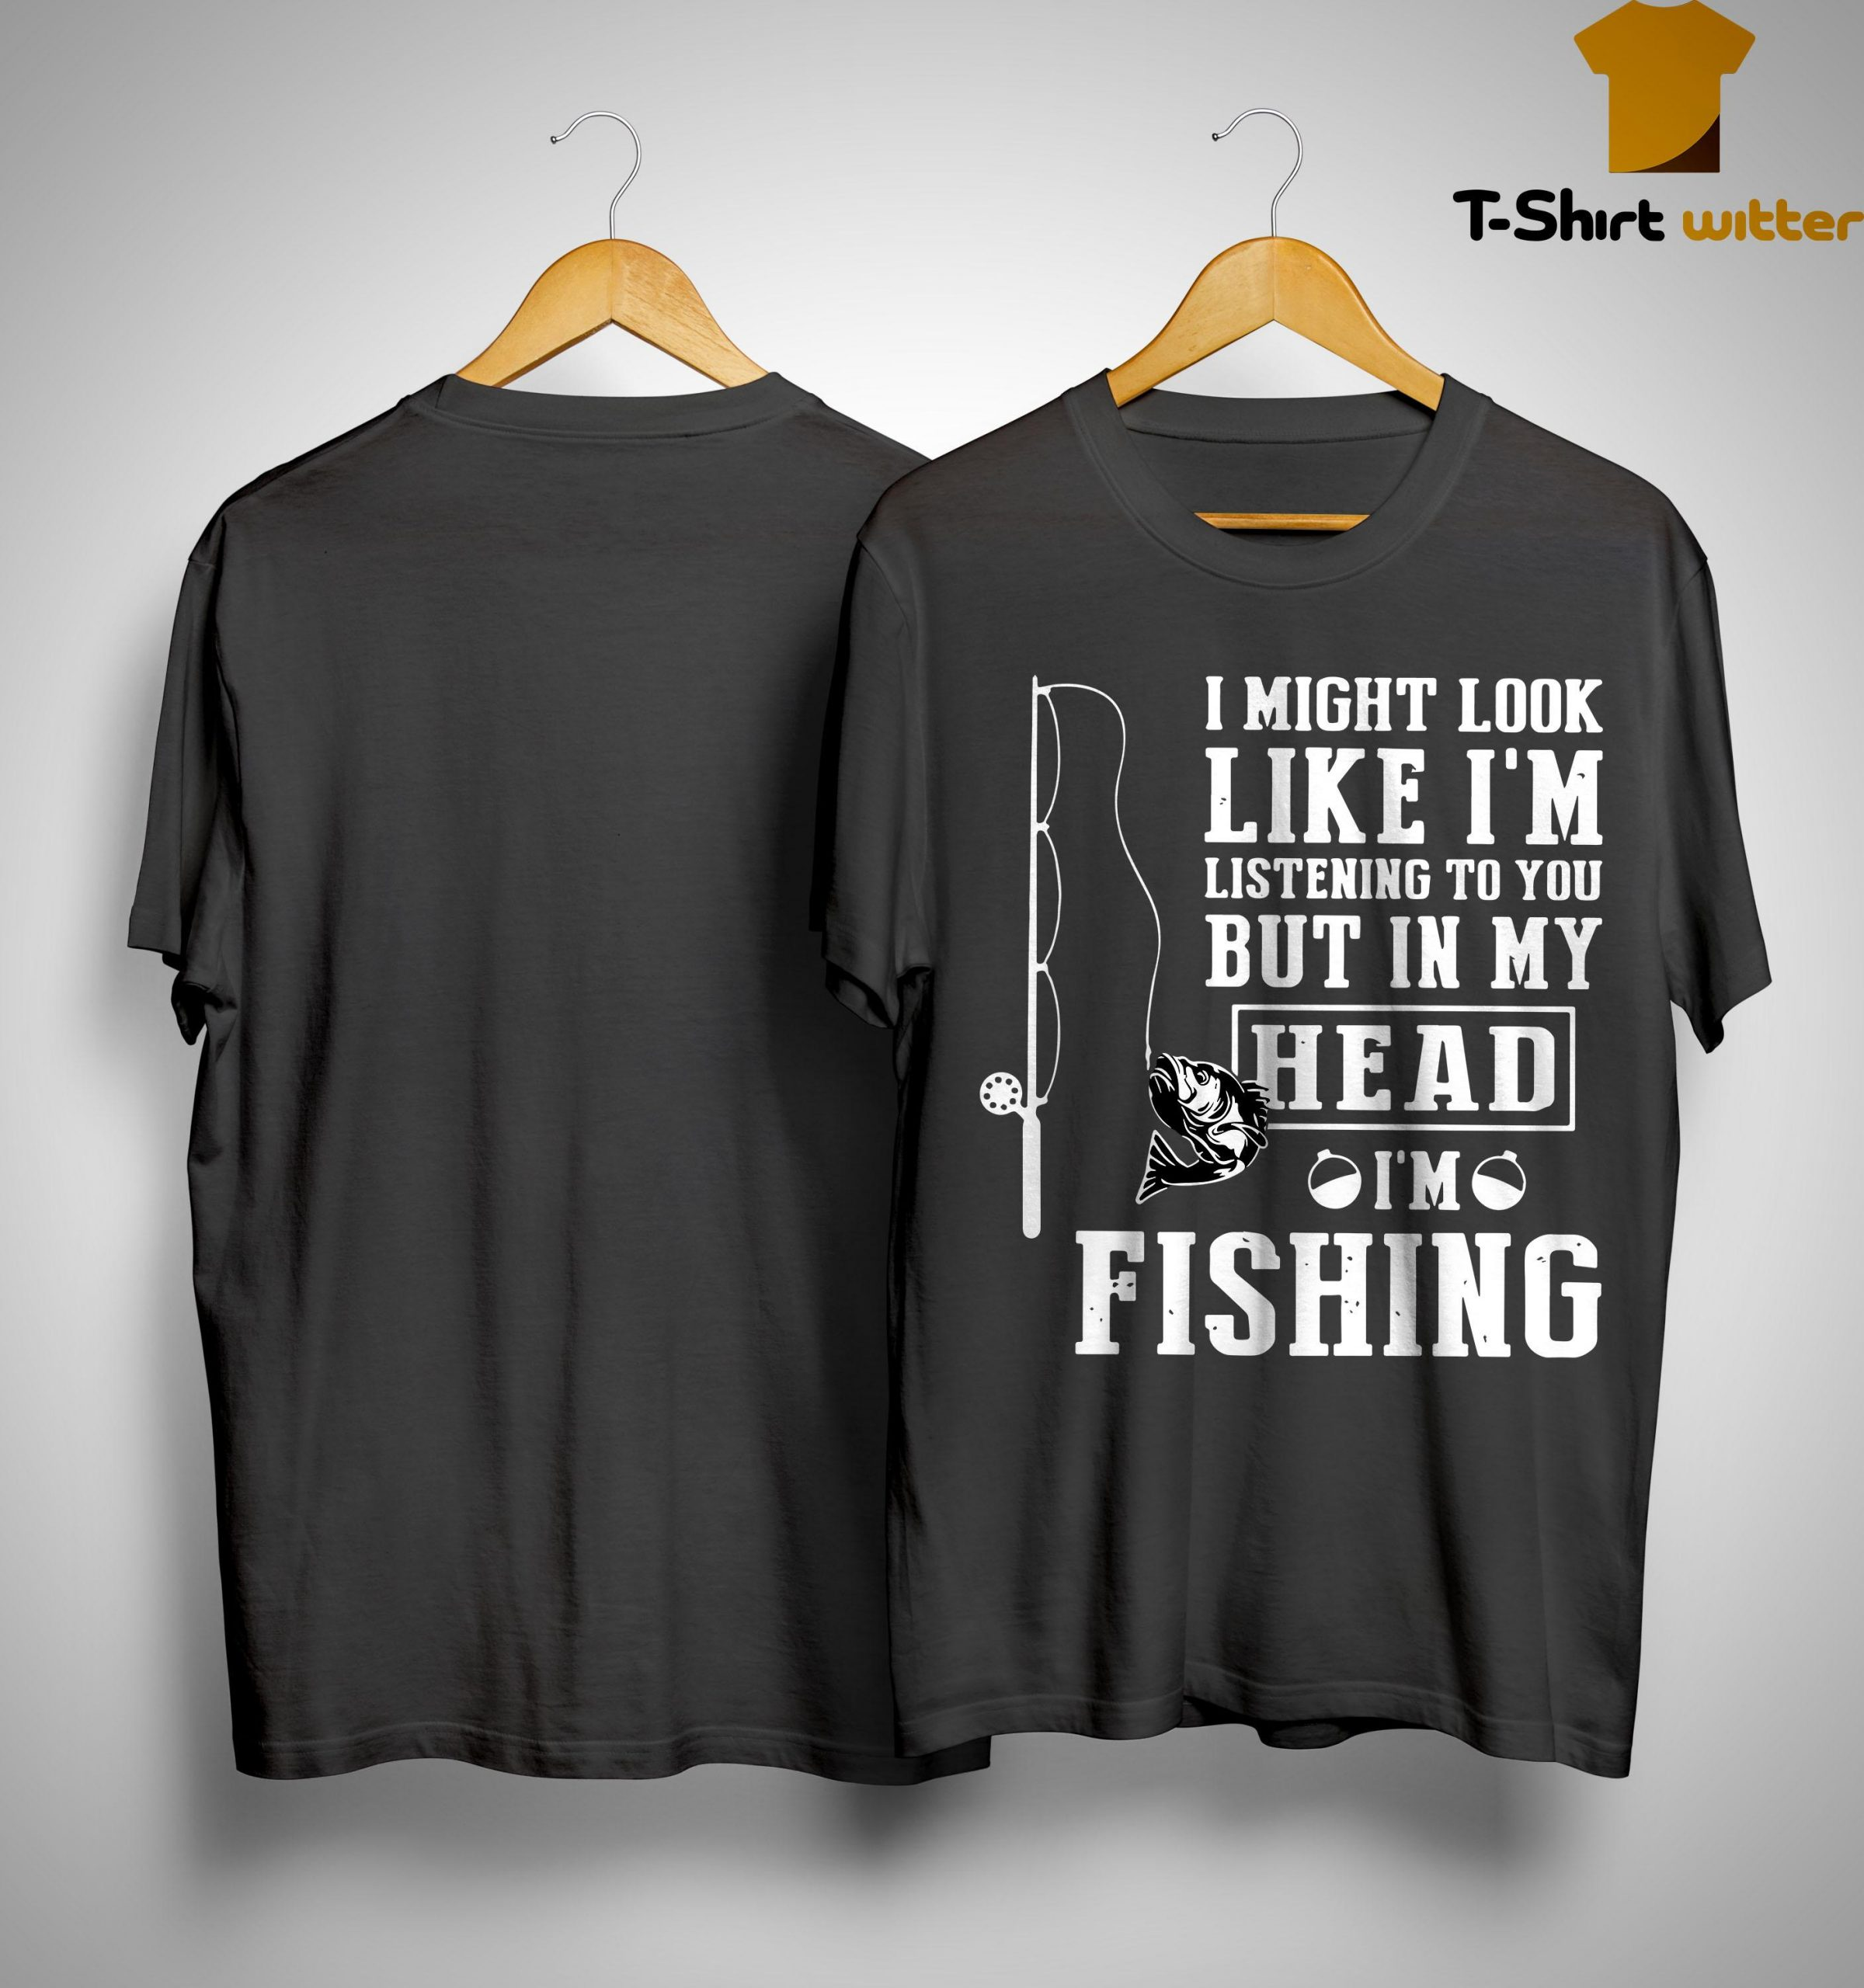 I Might Look Like I'm Listening To You But In My Head I'm Fishing Shirt